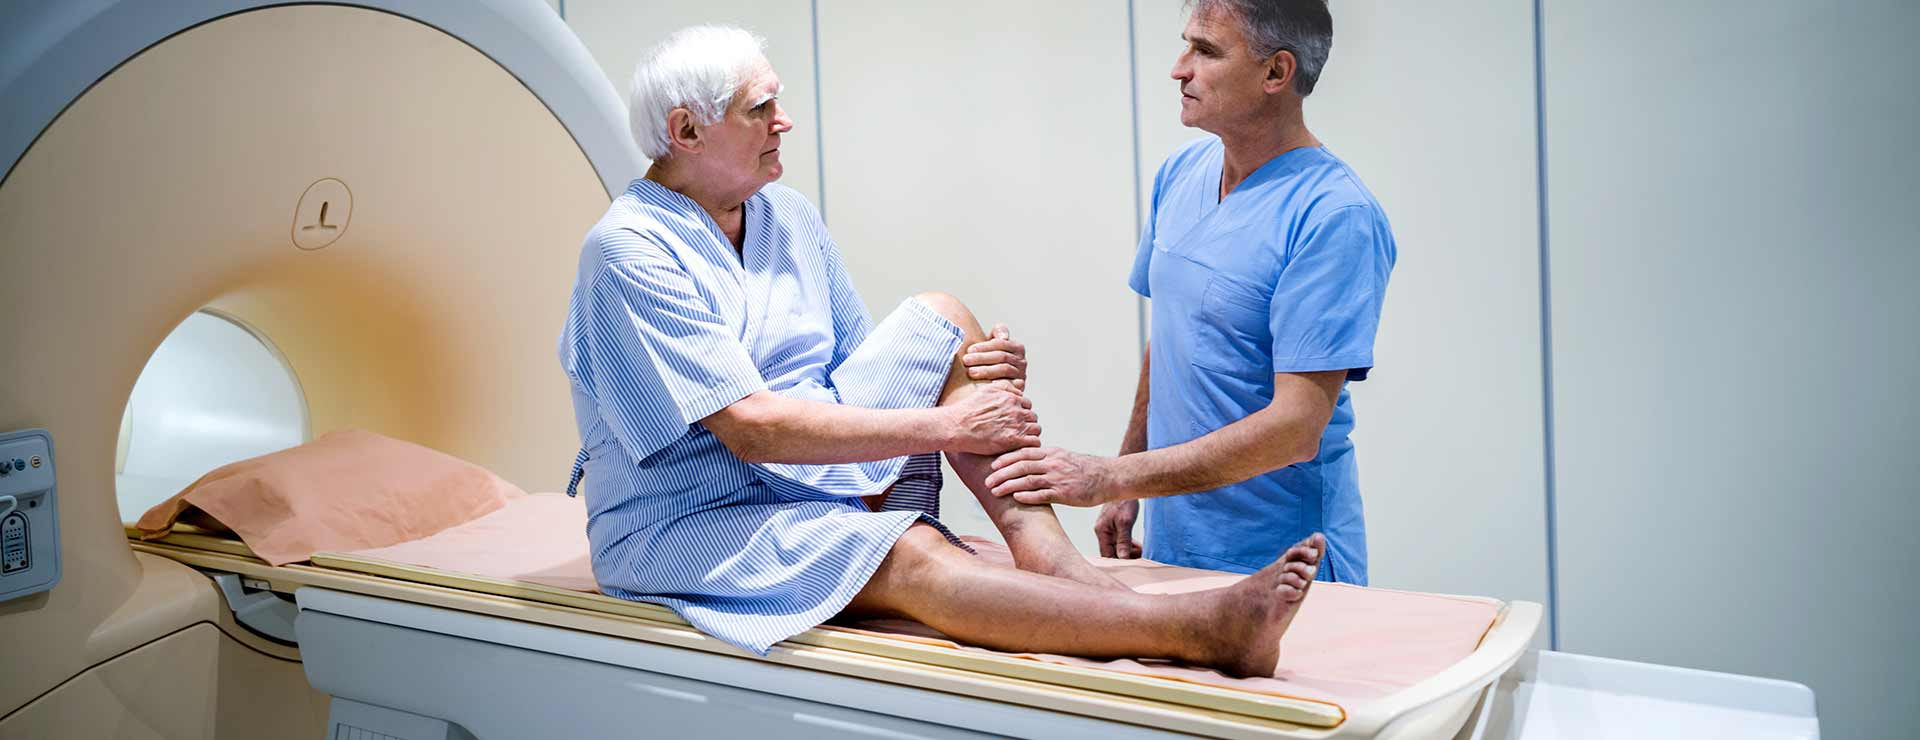 a man prepares to undergo a medical scan